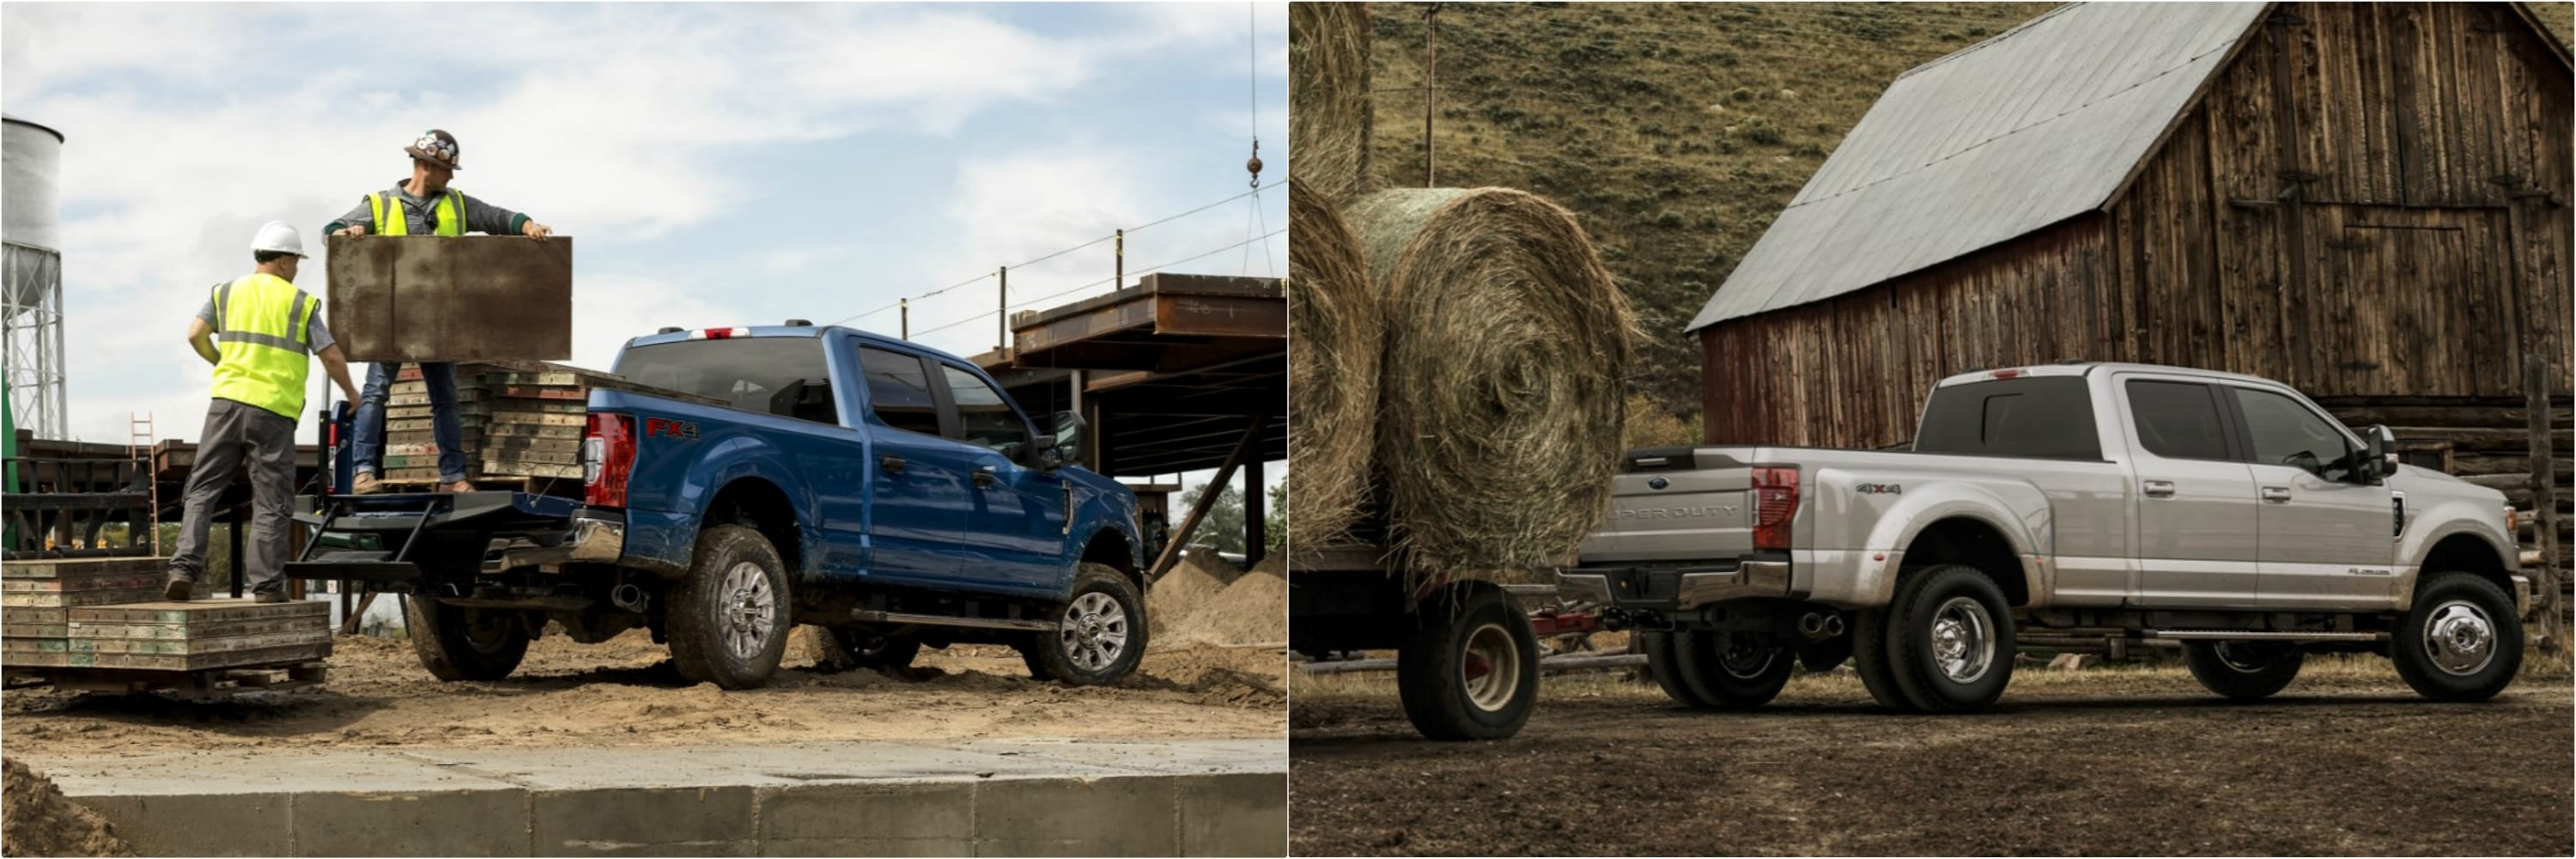 payload and towing capacity of a 2021 vs. 2020 Super Duty